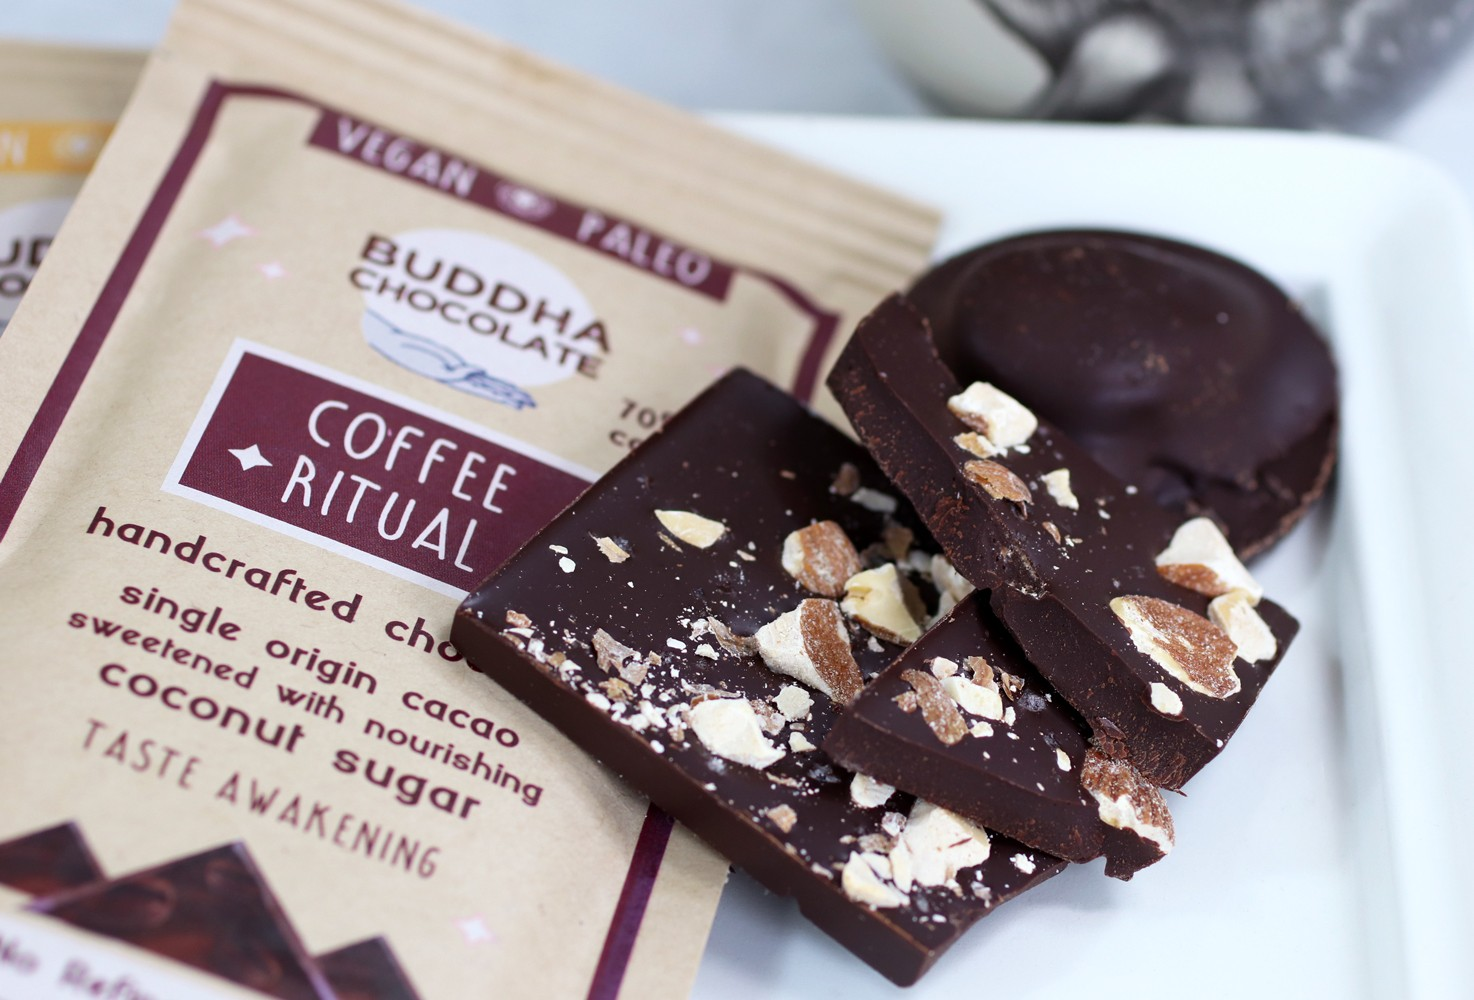 Buddha Chocolate is the BEST paleo and vegan chocolate ever - review by health blogger My Beauty Bunny